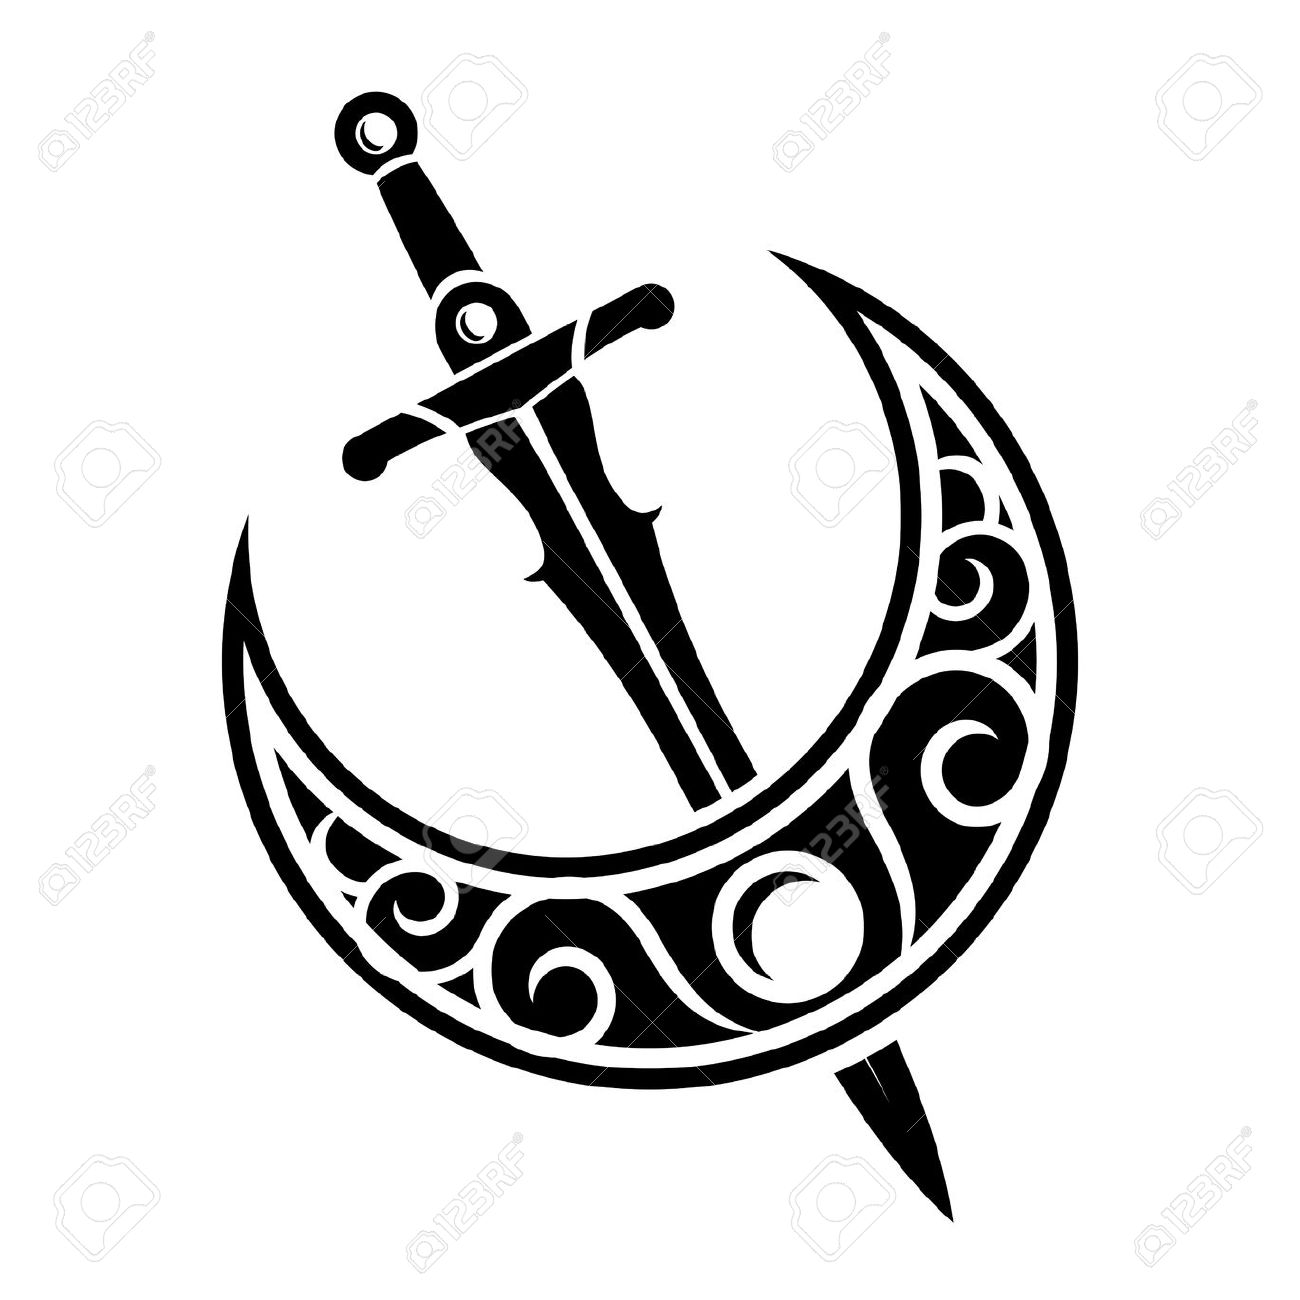 Indian sword clipart black and white 7 » Clipart Station